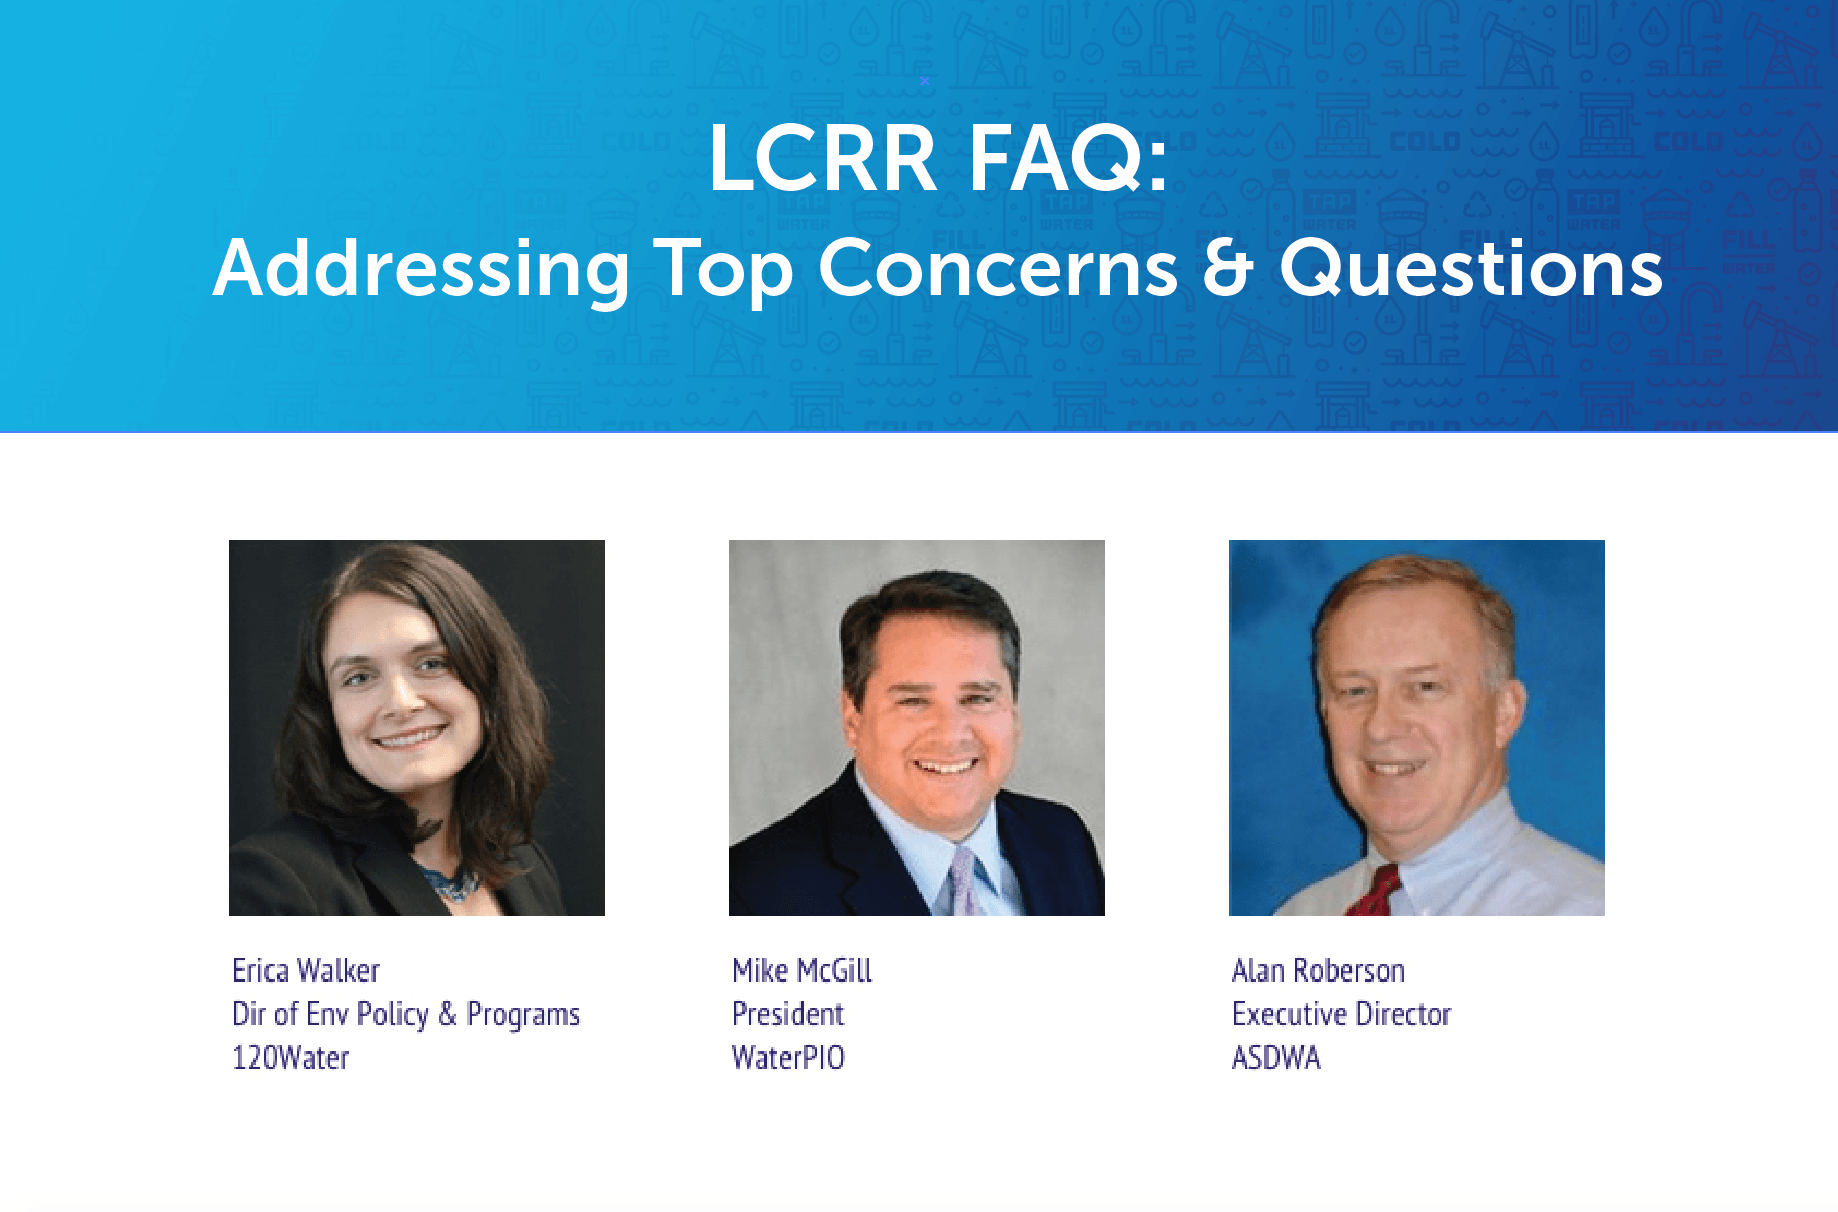 LCRR FAQ: Addressing Top Concerns and Questions